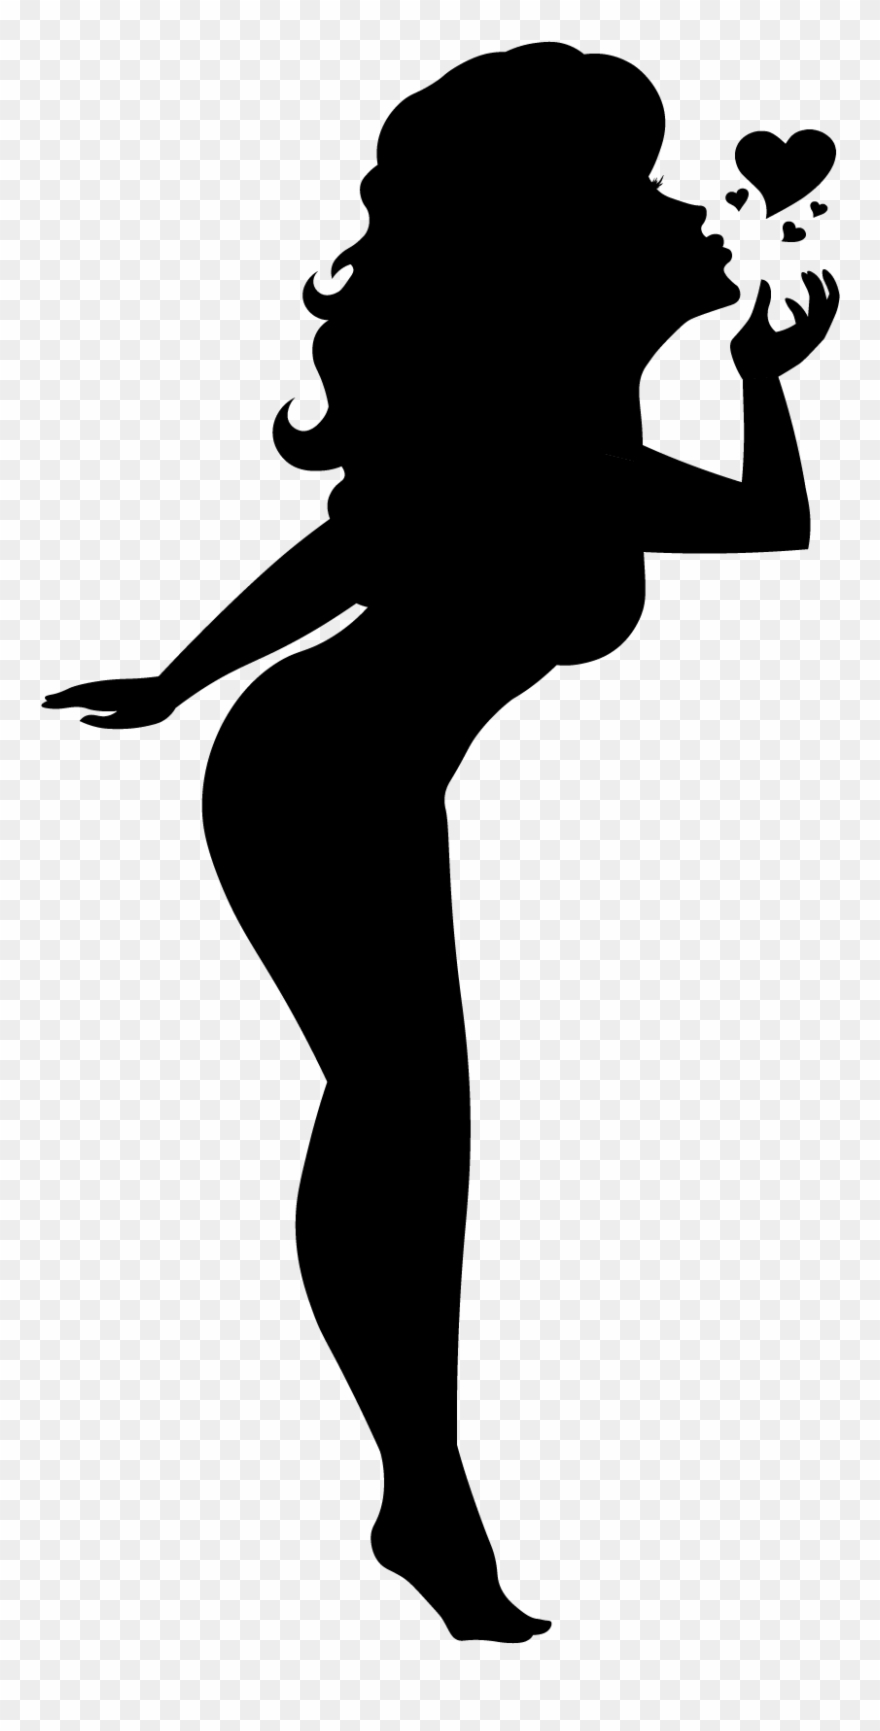 Blowing A Kiss Silhouette Pinup Girl Black Cutout Pin.